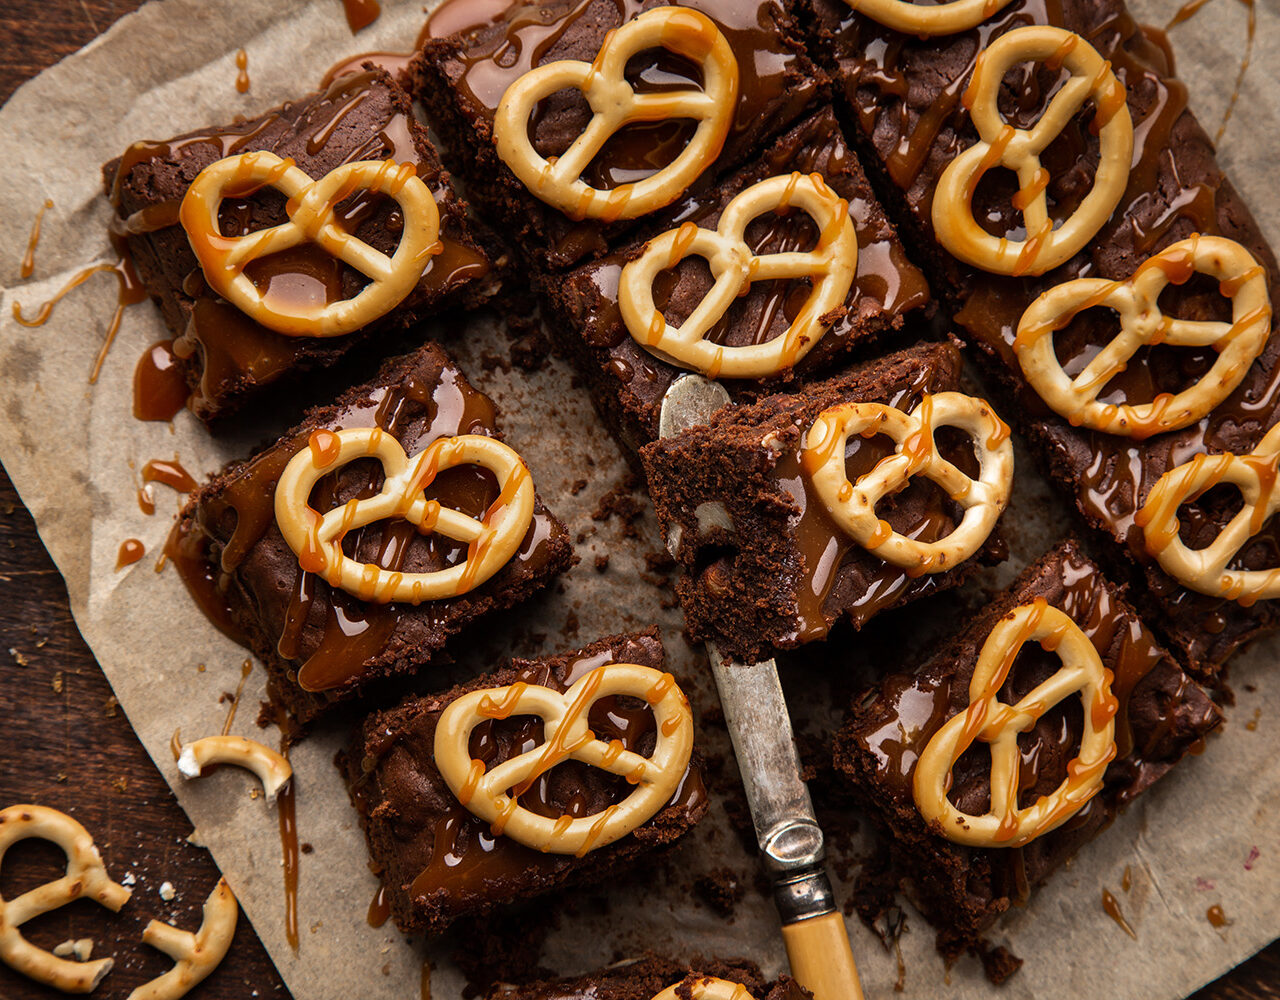 http://www.cravingscovered.com/wp-content/uploads/2020/05/Prez-Brownies-1280x1000.jpg